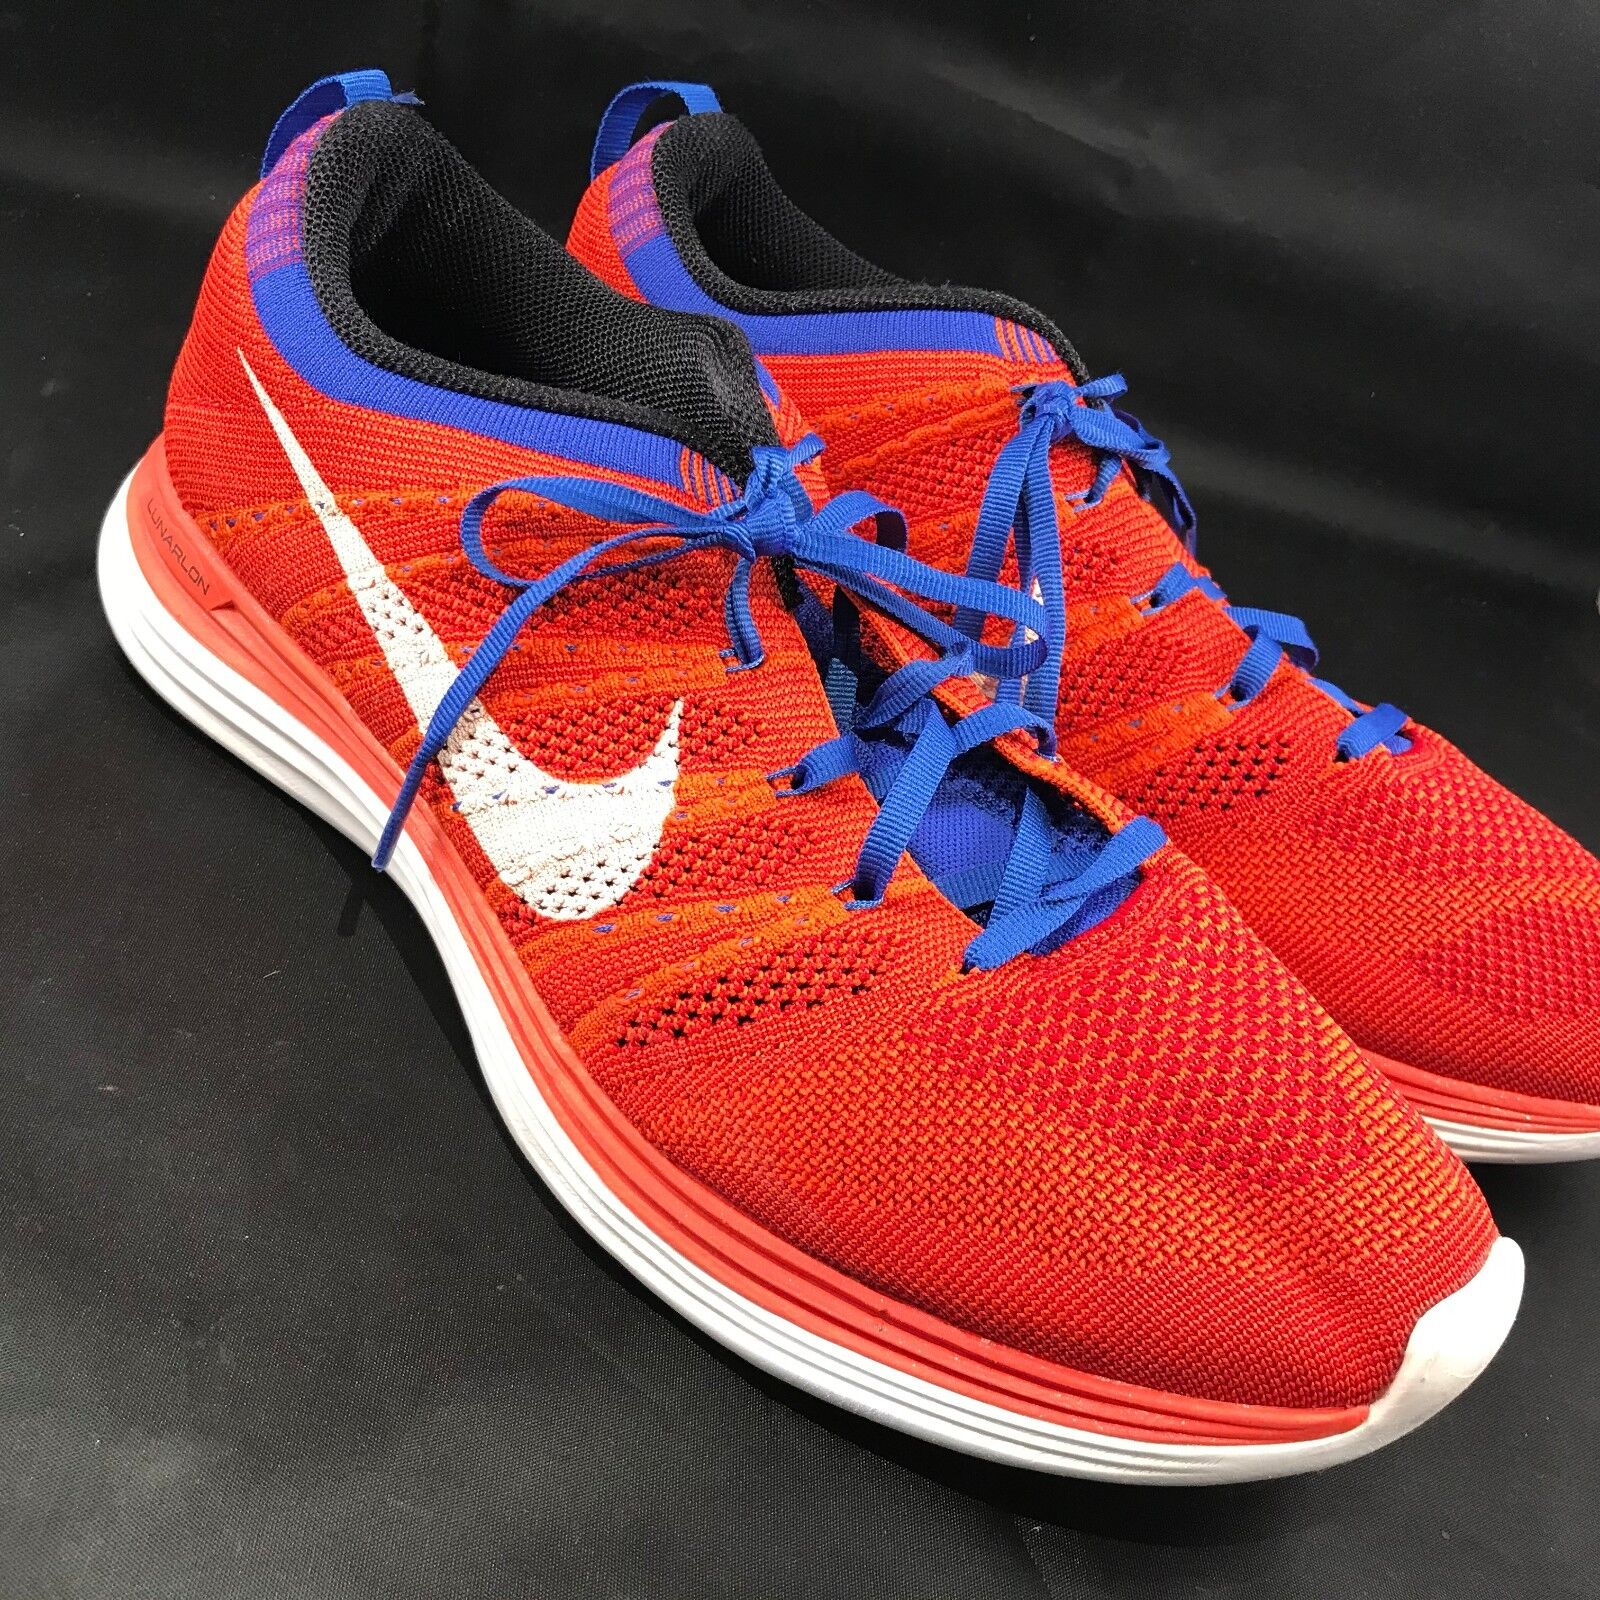 Excellent NIKE FLYKNIT LUNAR 1 Red White Uomo size 11.5 45.5 EUR